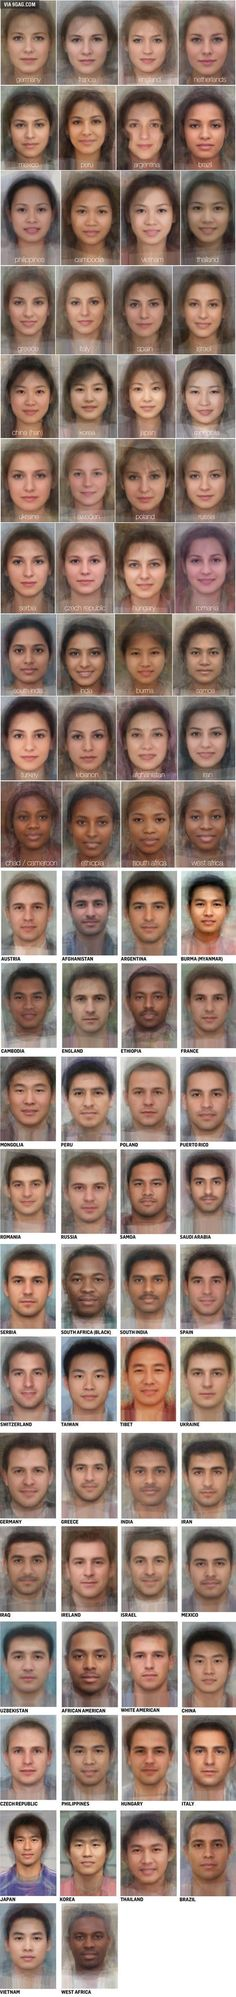 The Average Men and Women's Faces In Different Countries